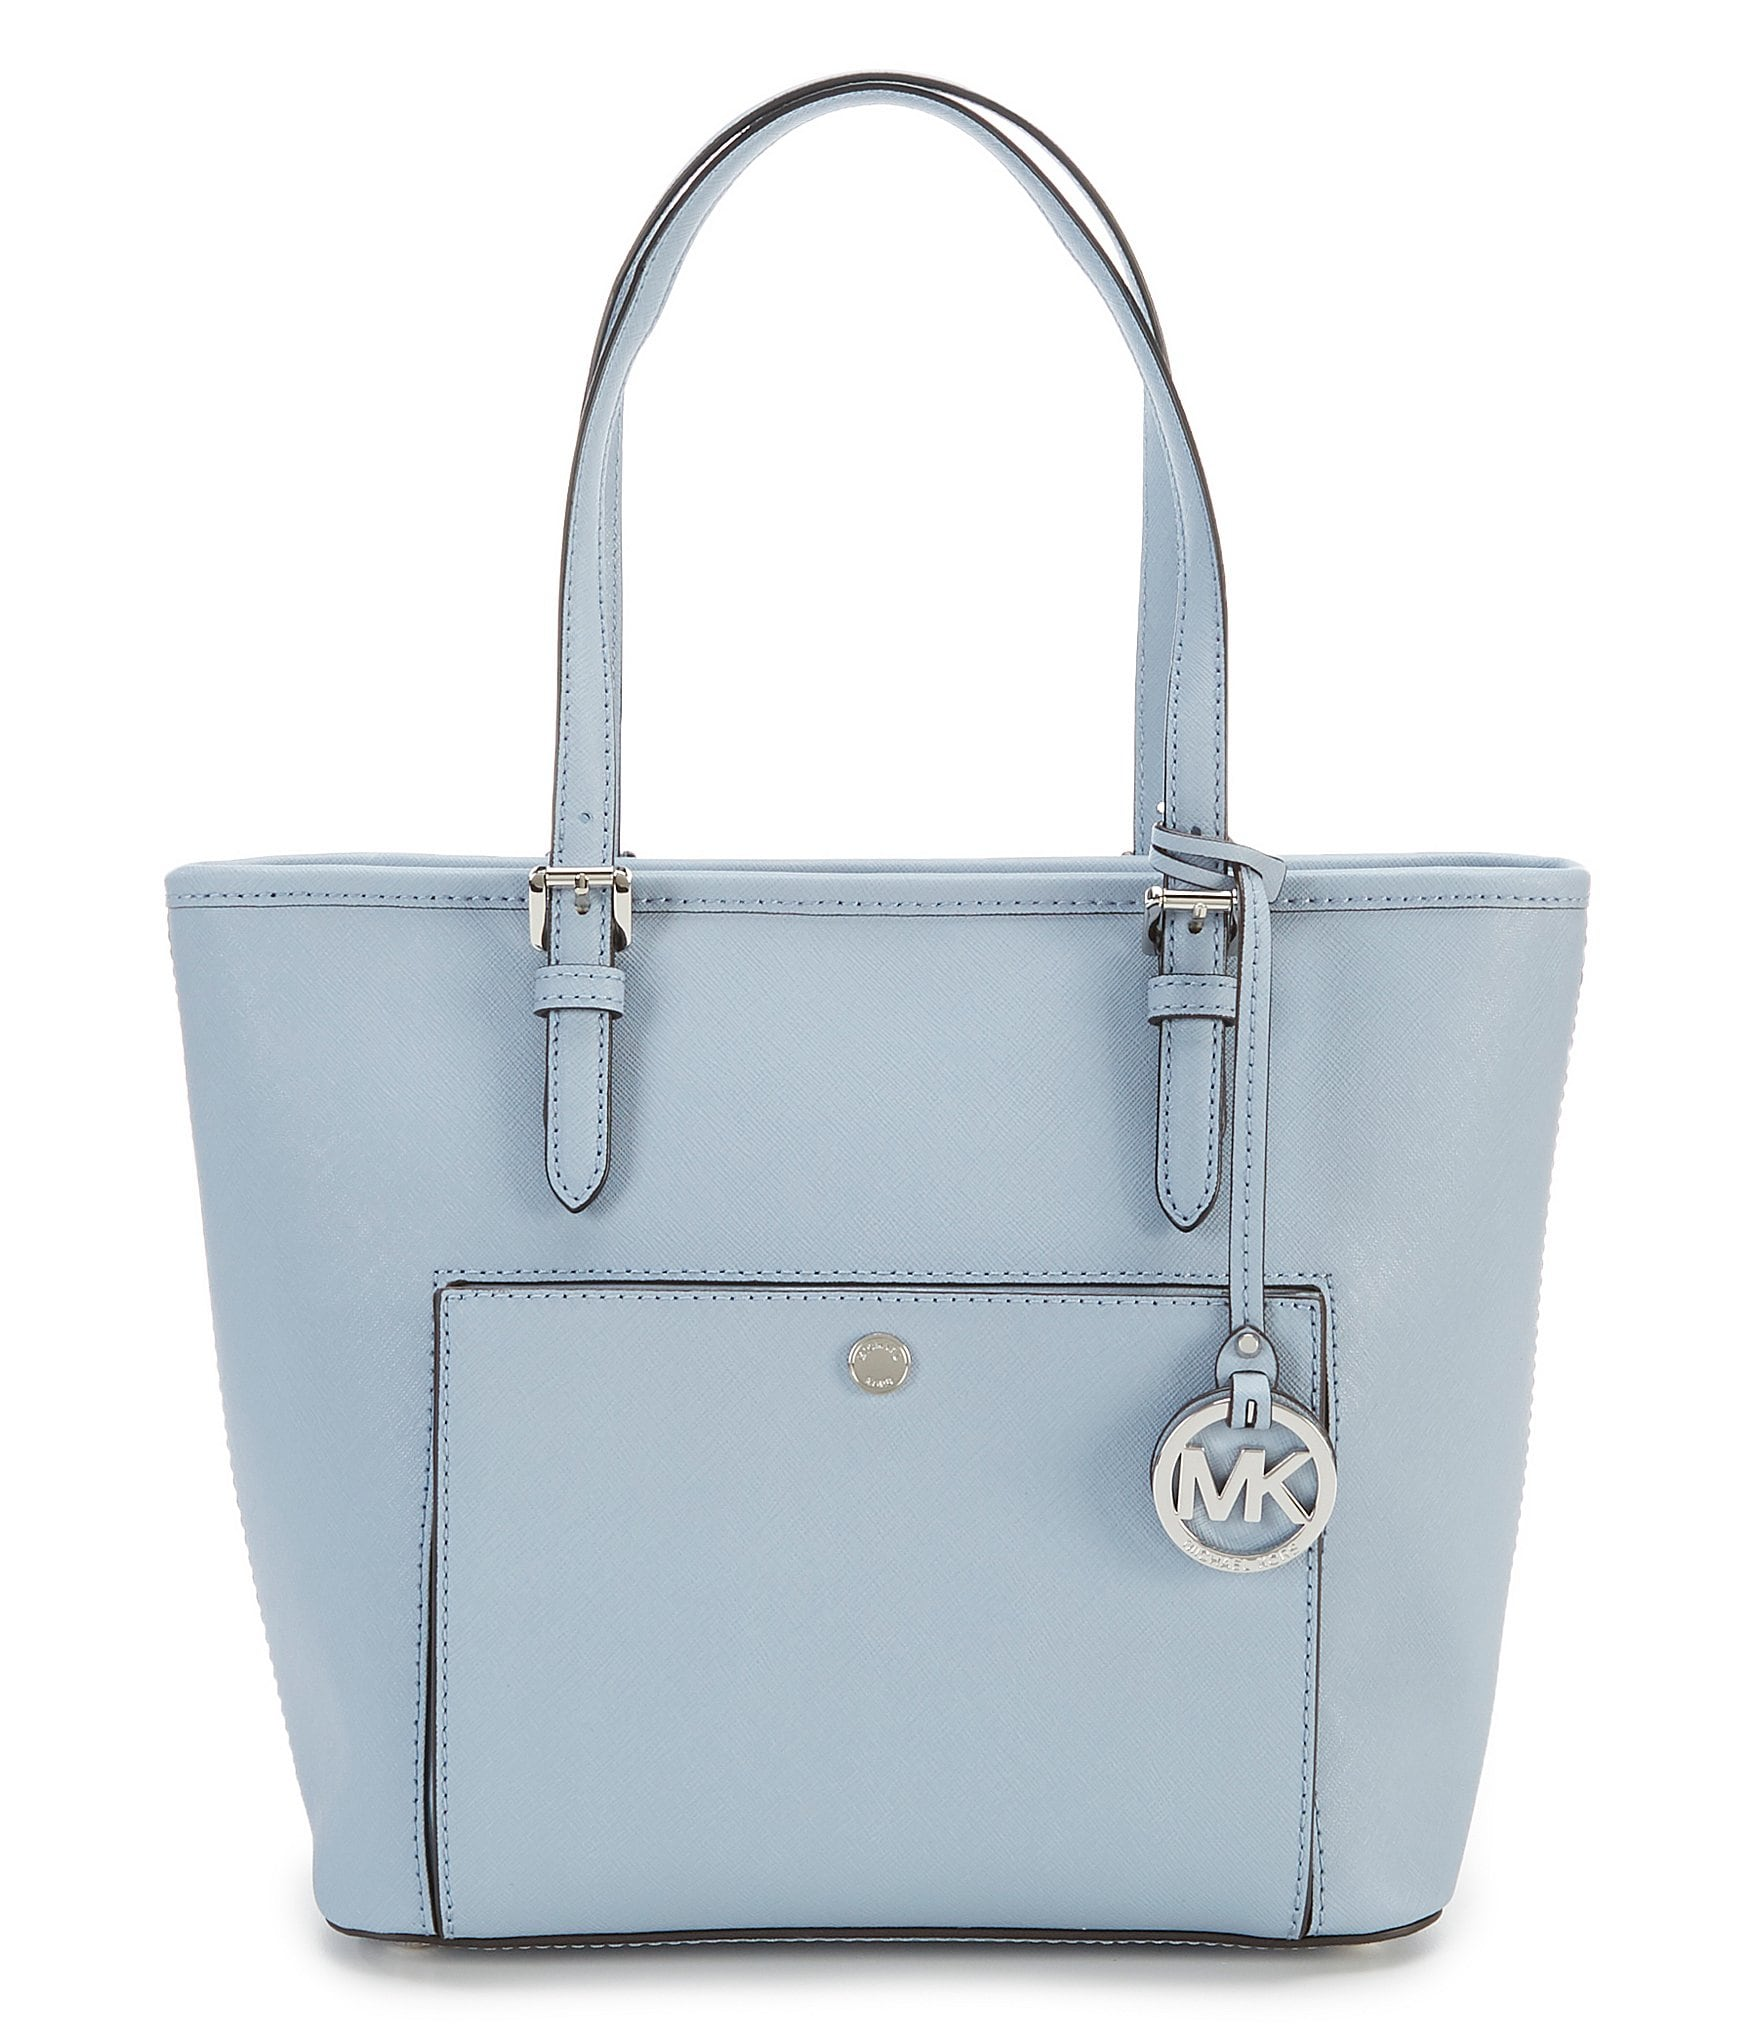 Bolsa Michael Kors Jet Set Saffiano : Michael kors jet set medium snap pocket tote